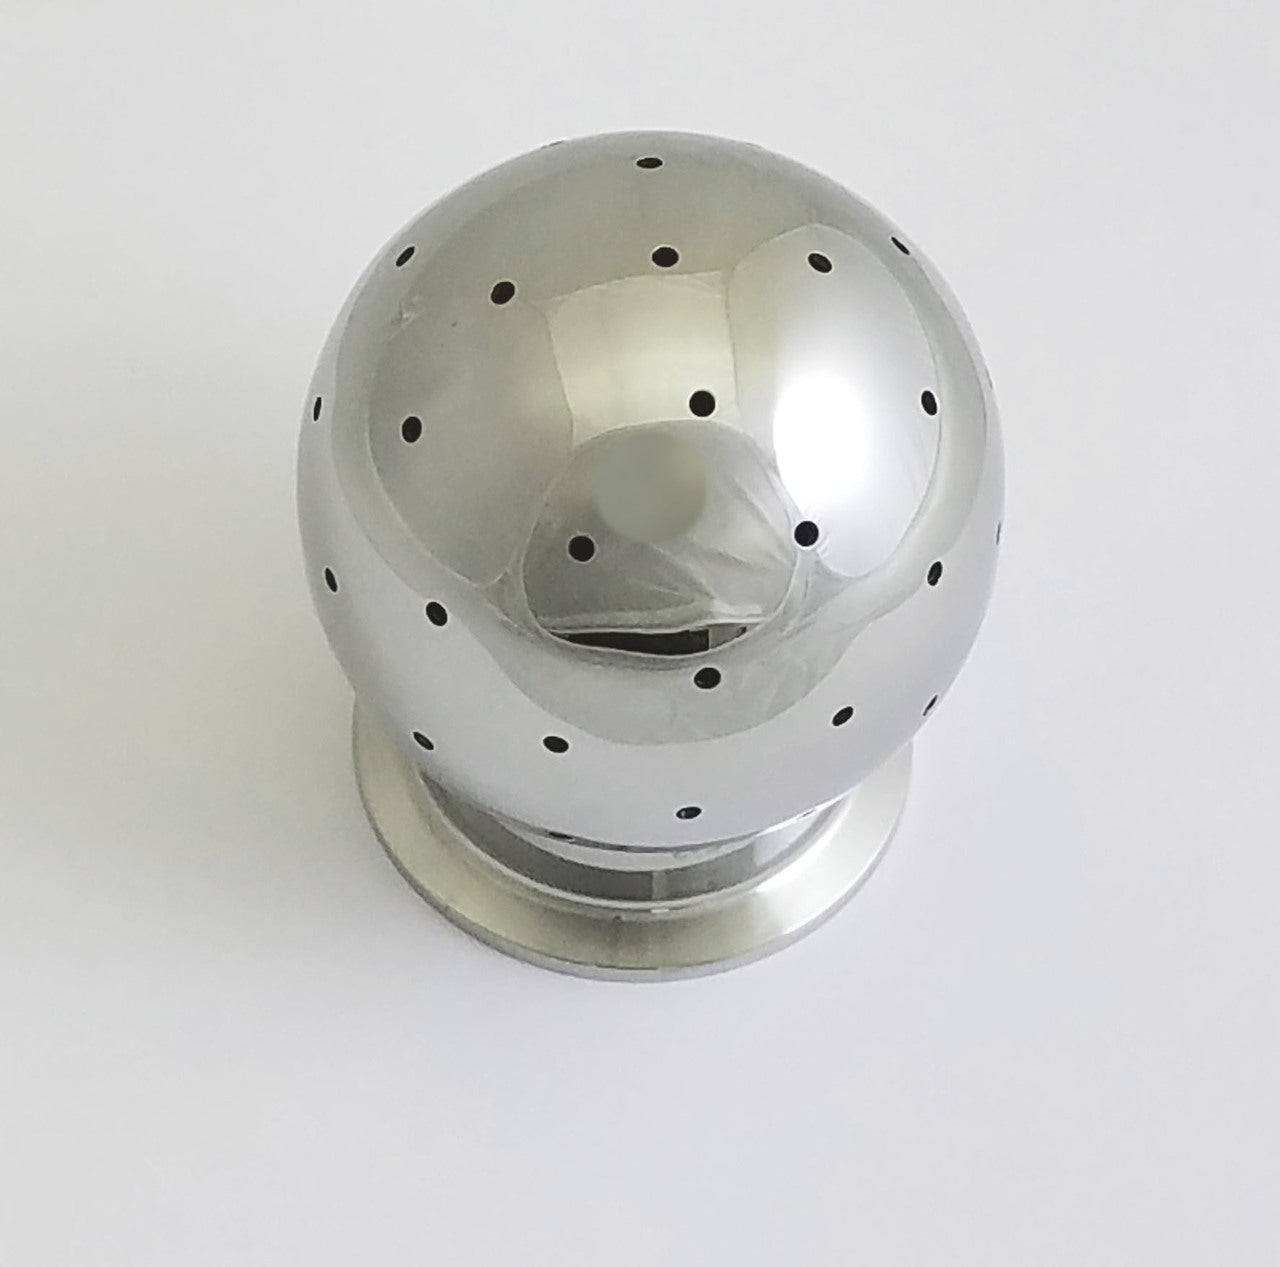 "2.5"" CIP Spray Ball"